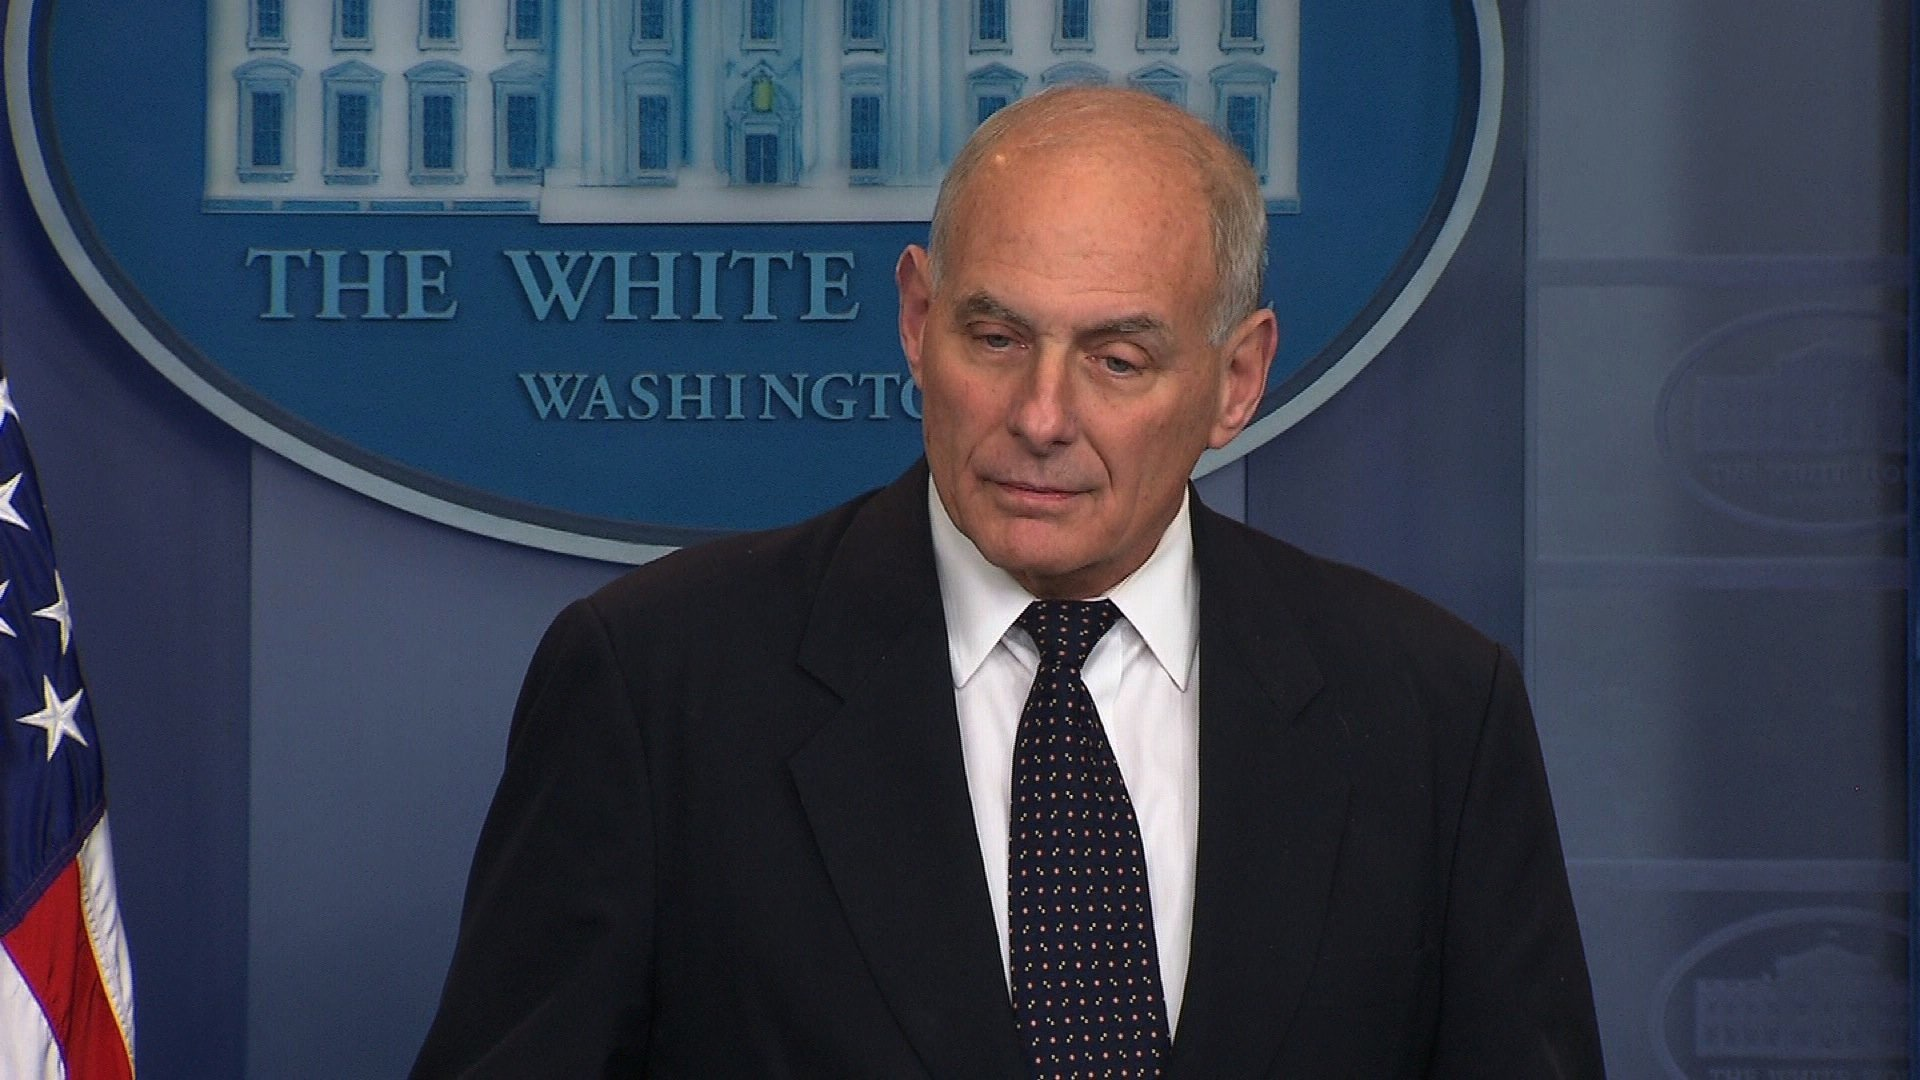 John Kelly told Democrats some of Trump's campaign stances 'uninformed'